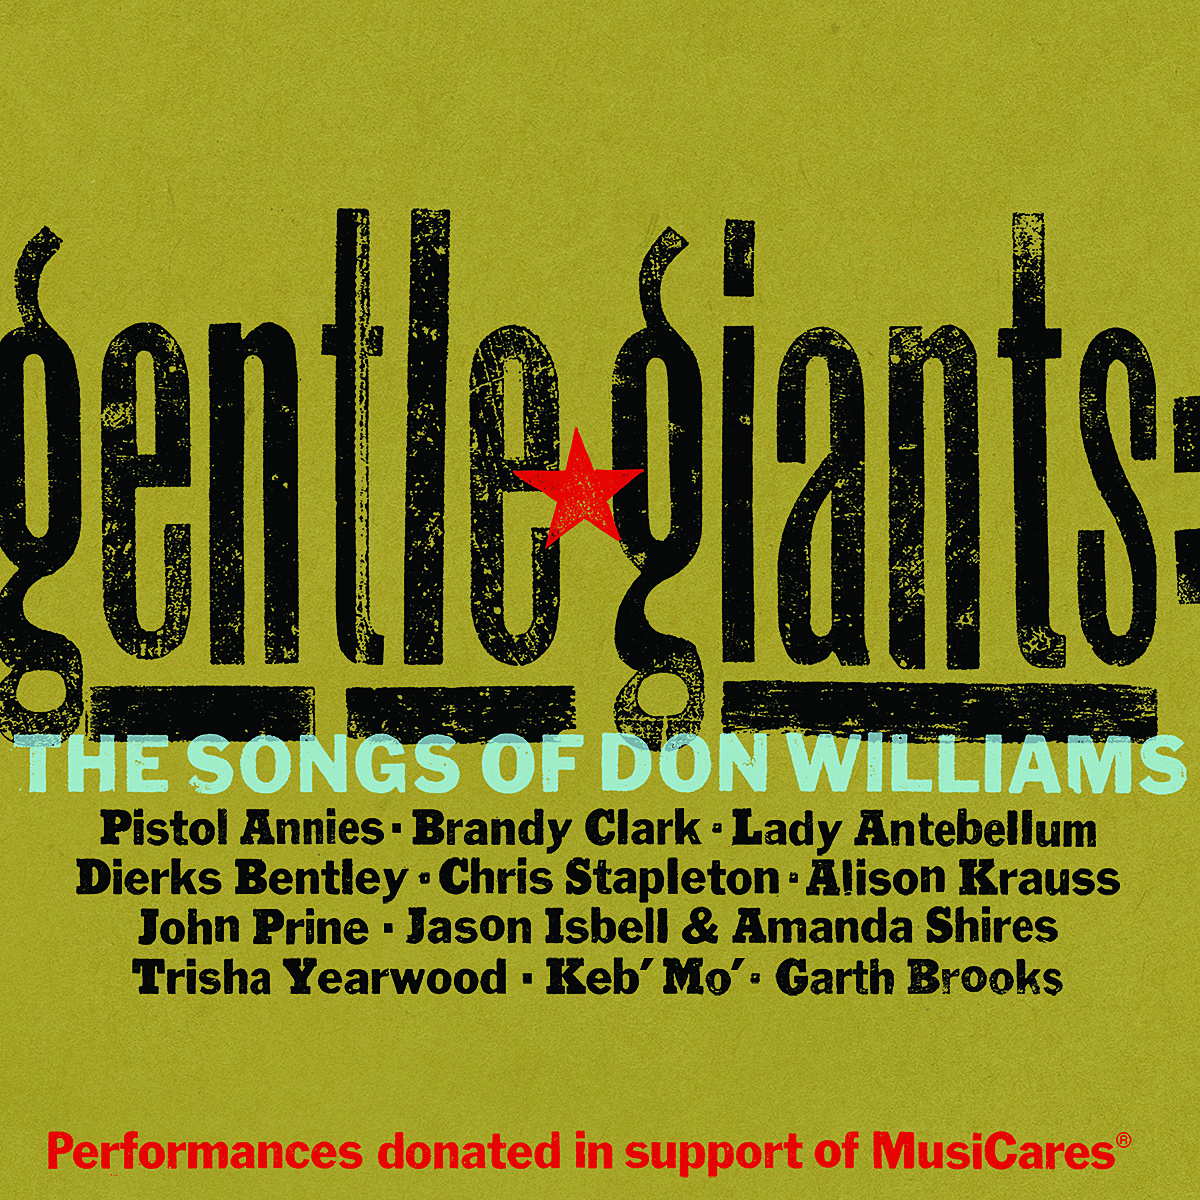 Gentle Giants The Songs Of Don Williams Features All